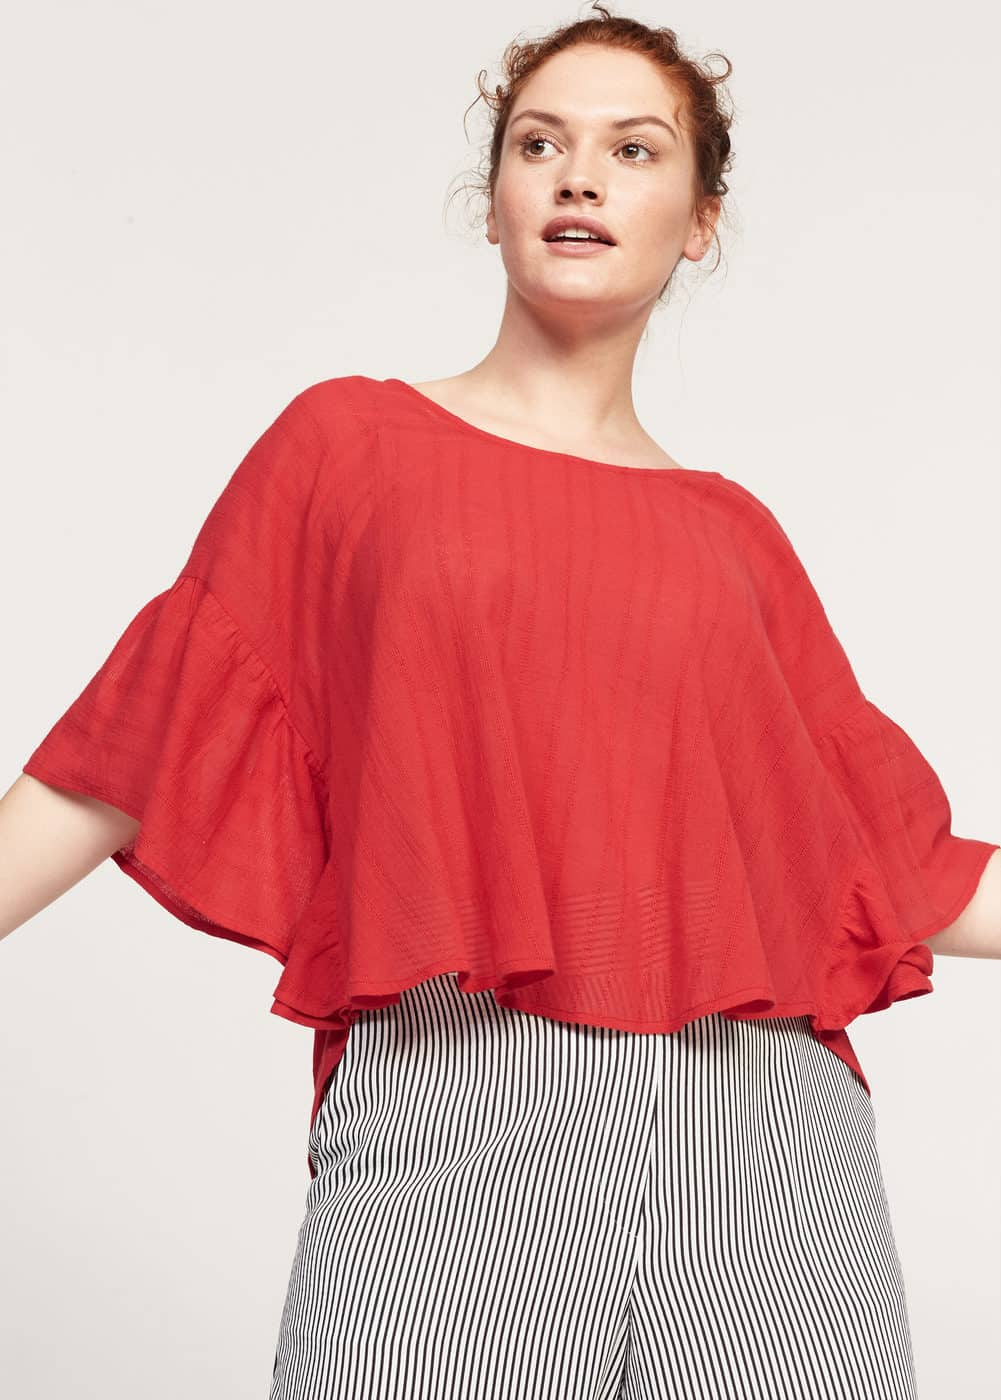 Ruffled sleeve blouse | VIOLETA BY MANGO